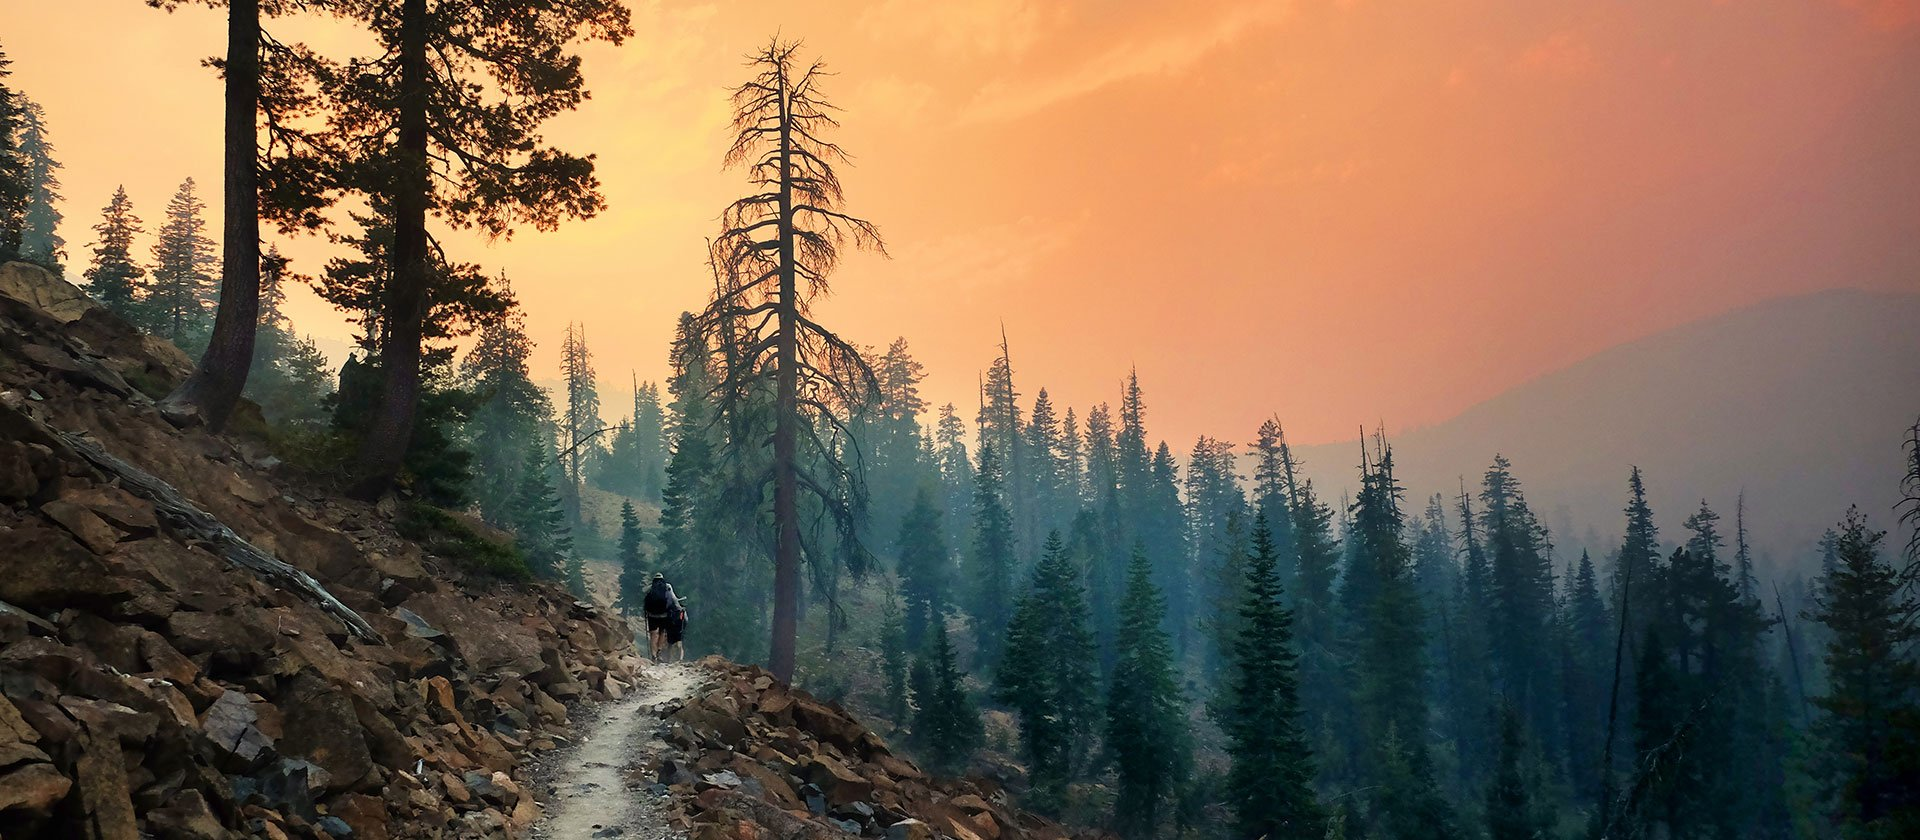 Trail closures - Pacific Crest Trail Association